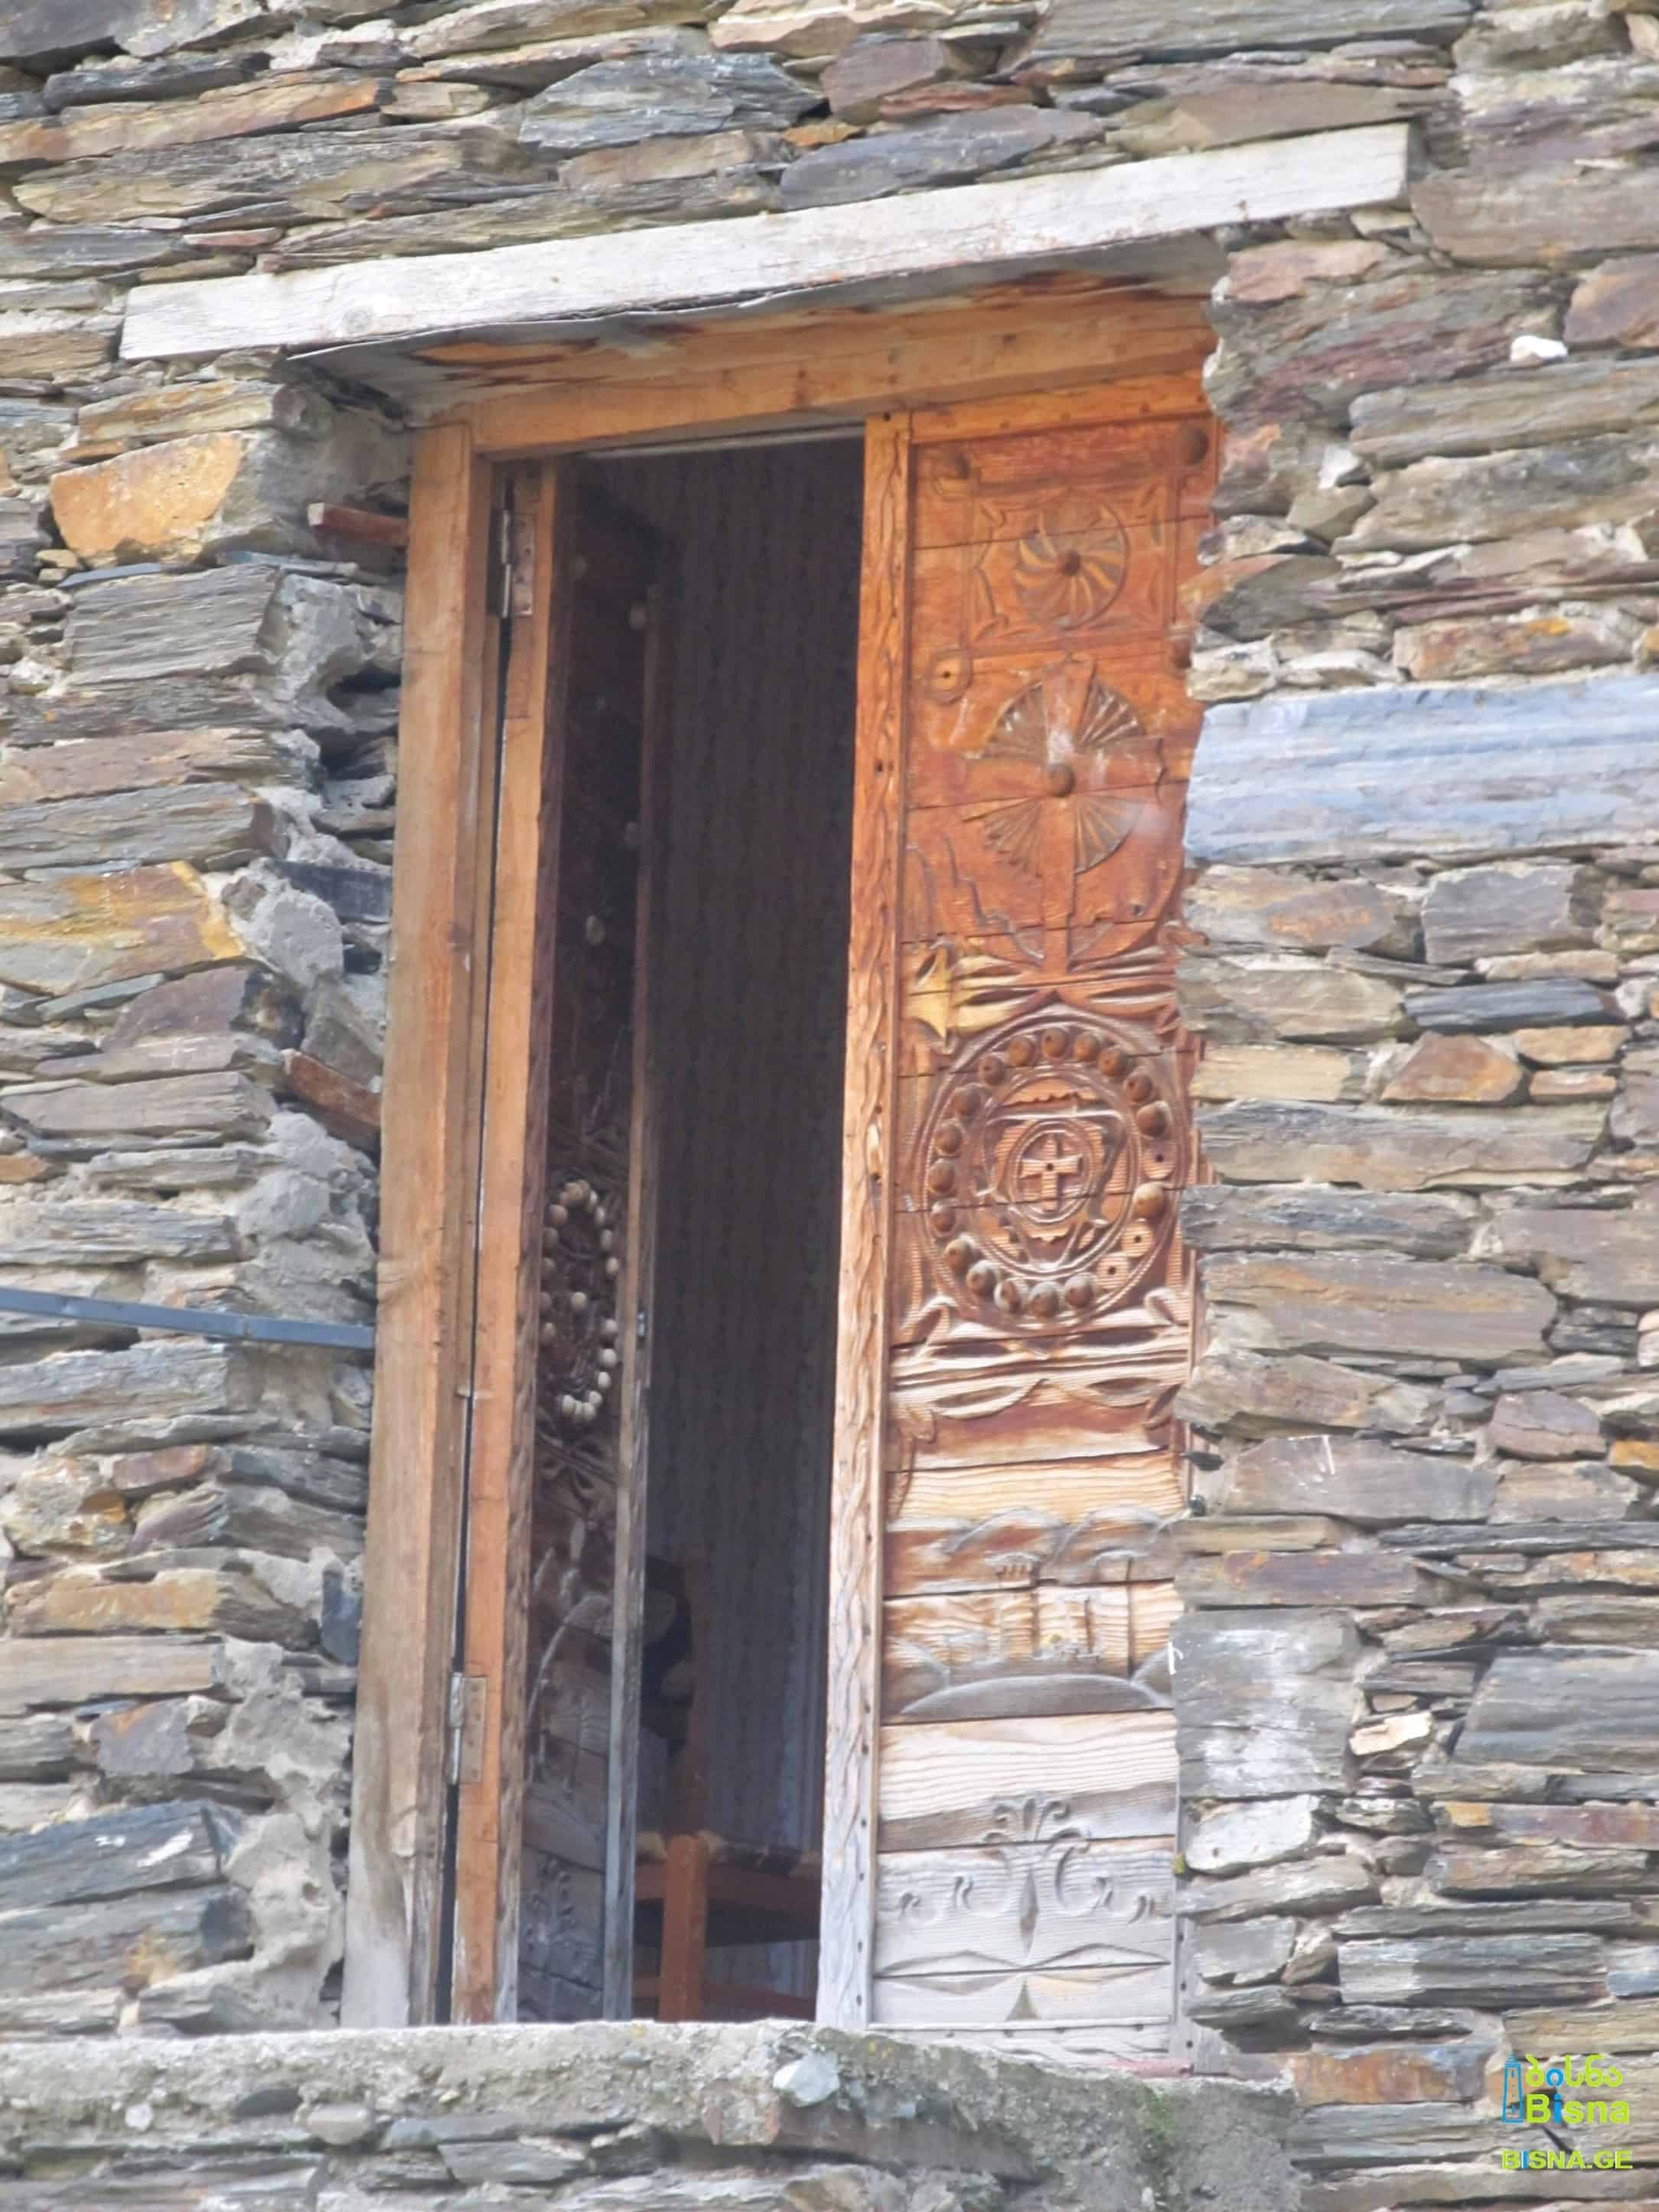 A door on an old building, Ushguli